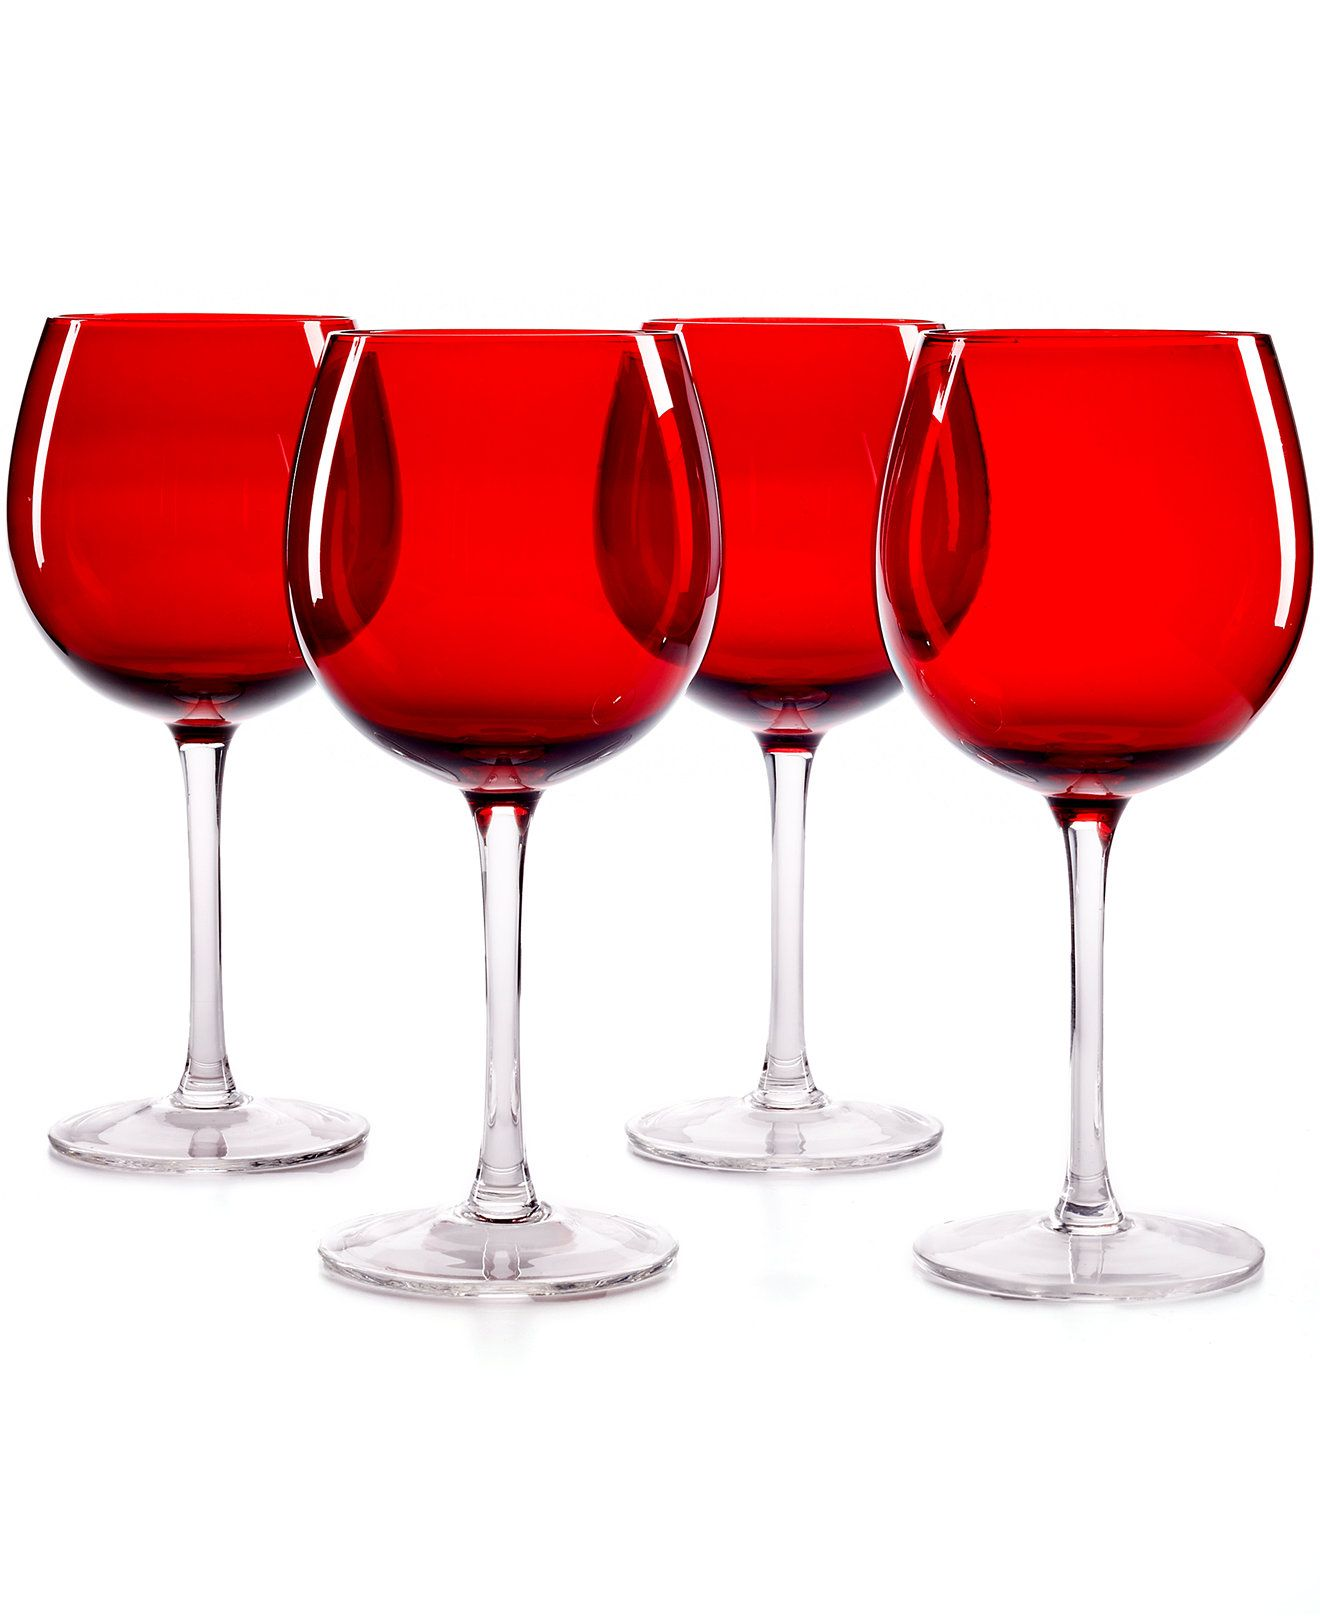 The Cellar Set Of 4 Red Balloon Wine Glasses Macy S Glassware Collection Glassware Glasses Shop